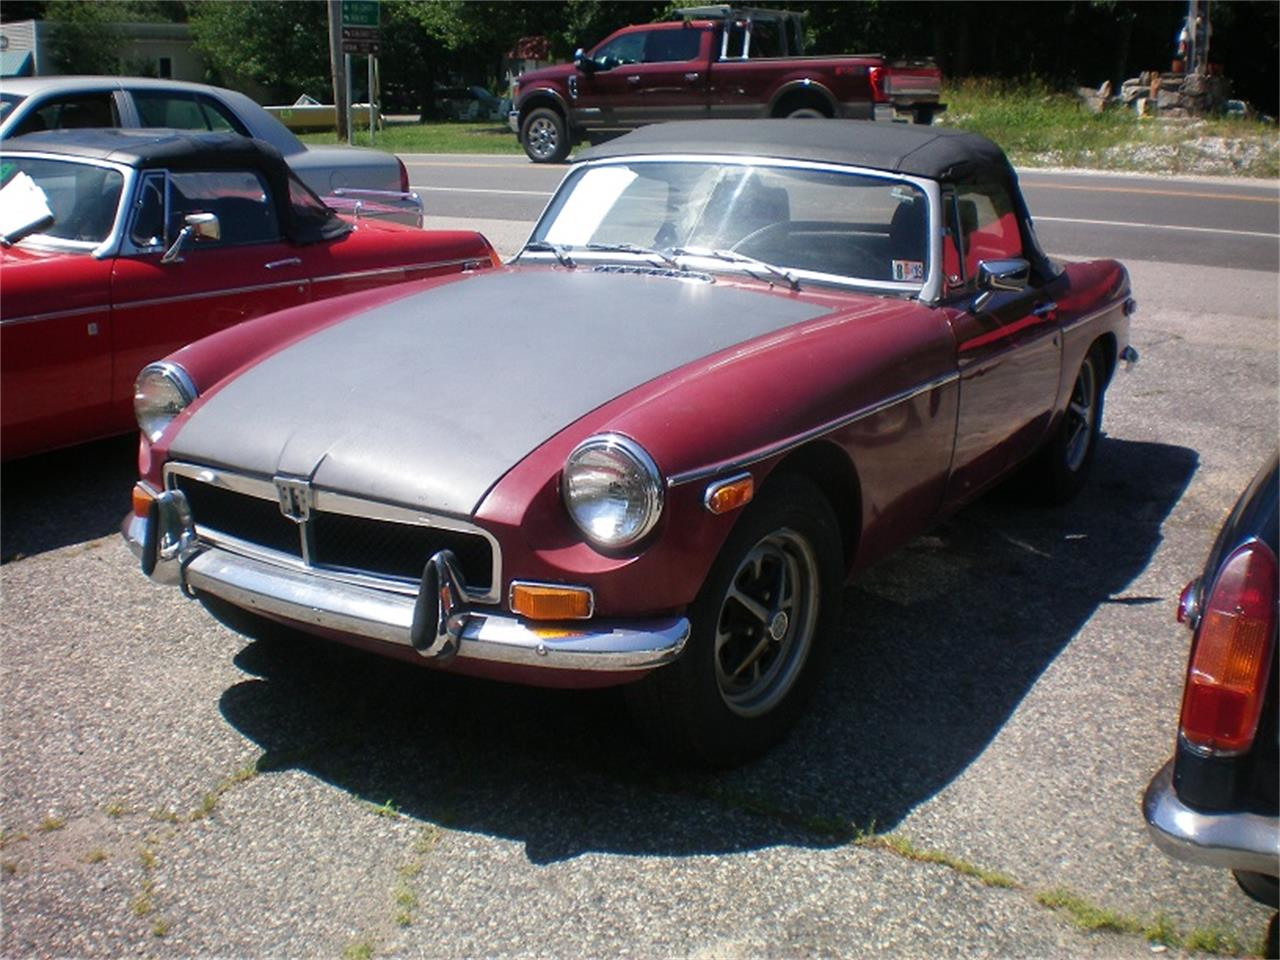 1974 MG MGB (CC-1110352) for sale in Rye, New Hampshire